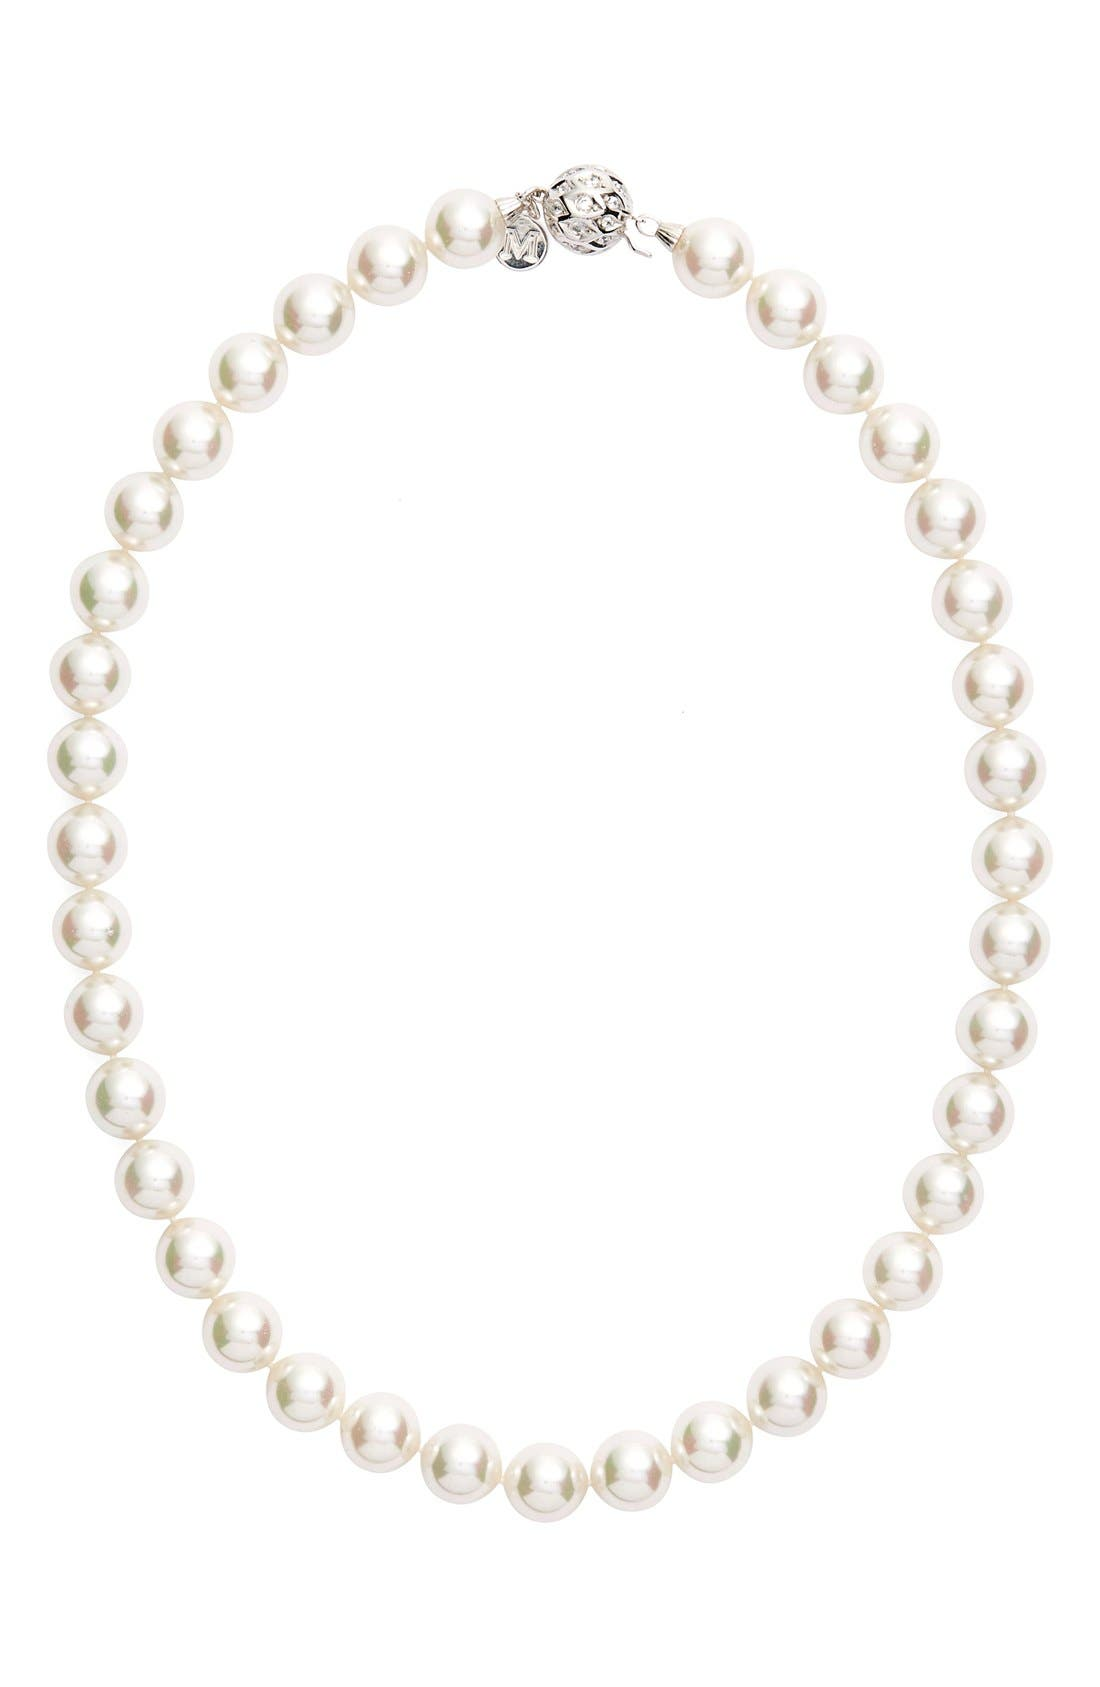 12mm Round Simulated Pearl Necklace,                             Main thumbnail 1, color,                             100